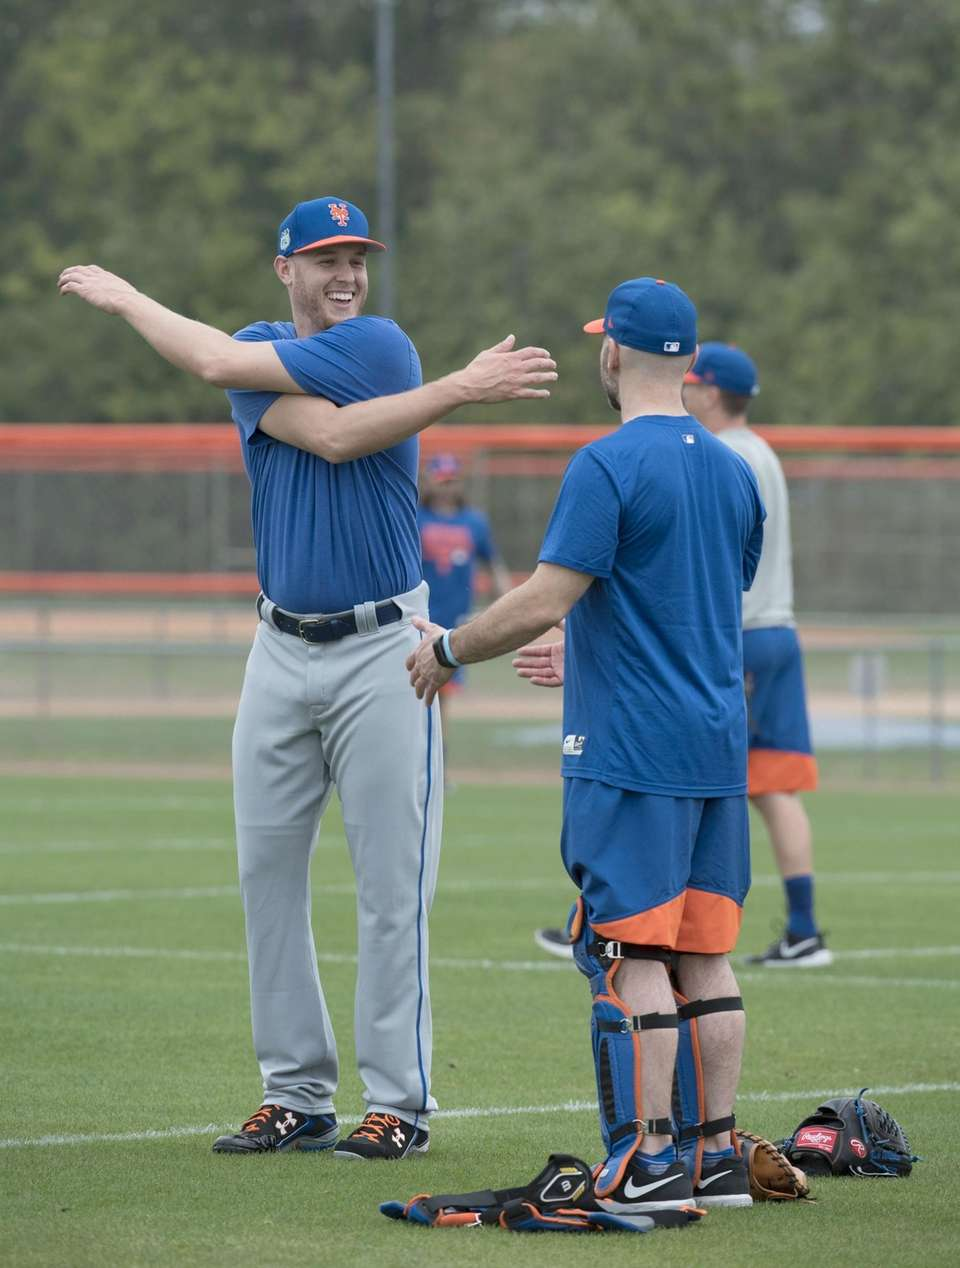 Mets pitcher Zach Wheeler stretches during a spring